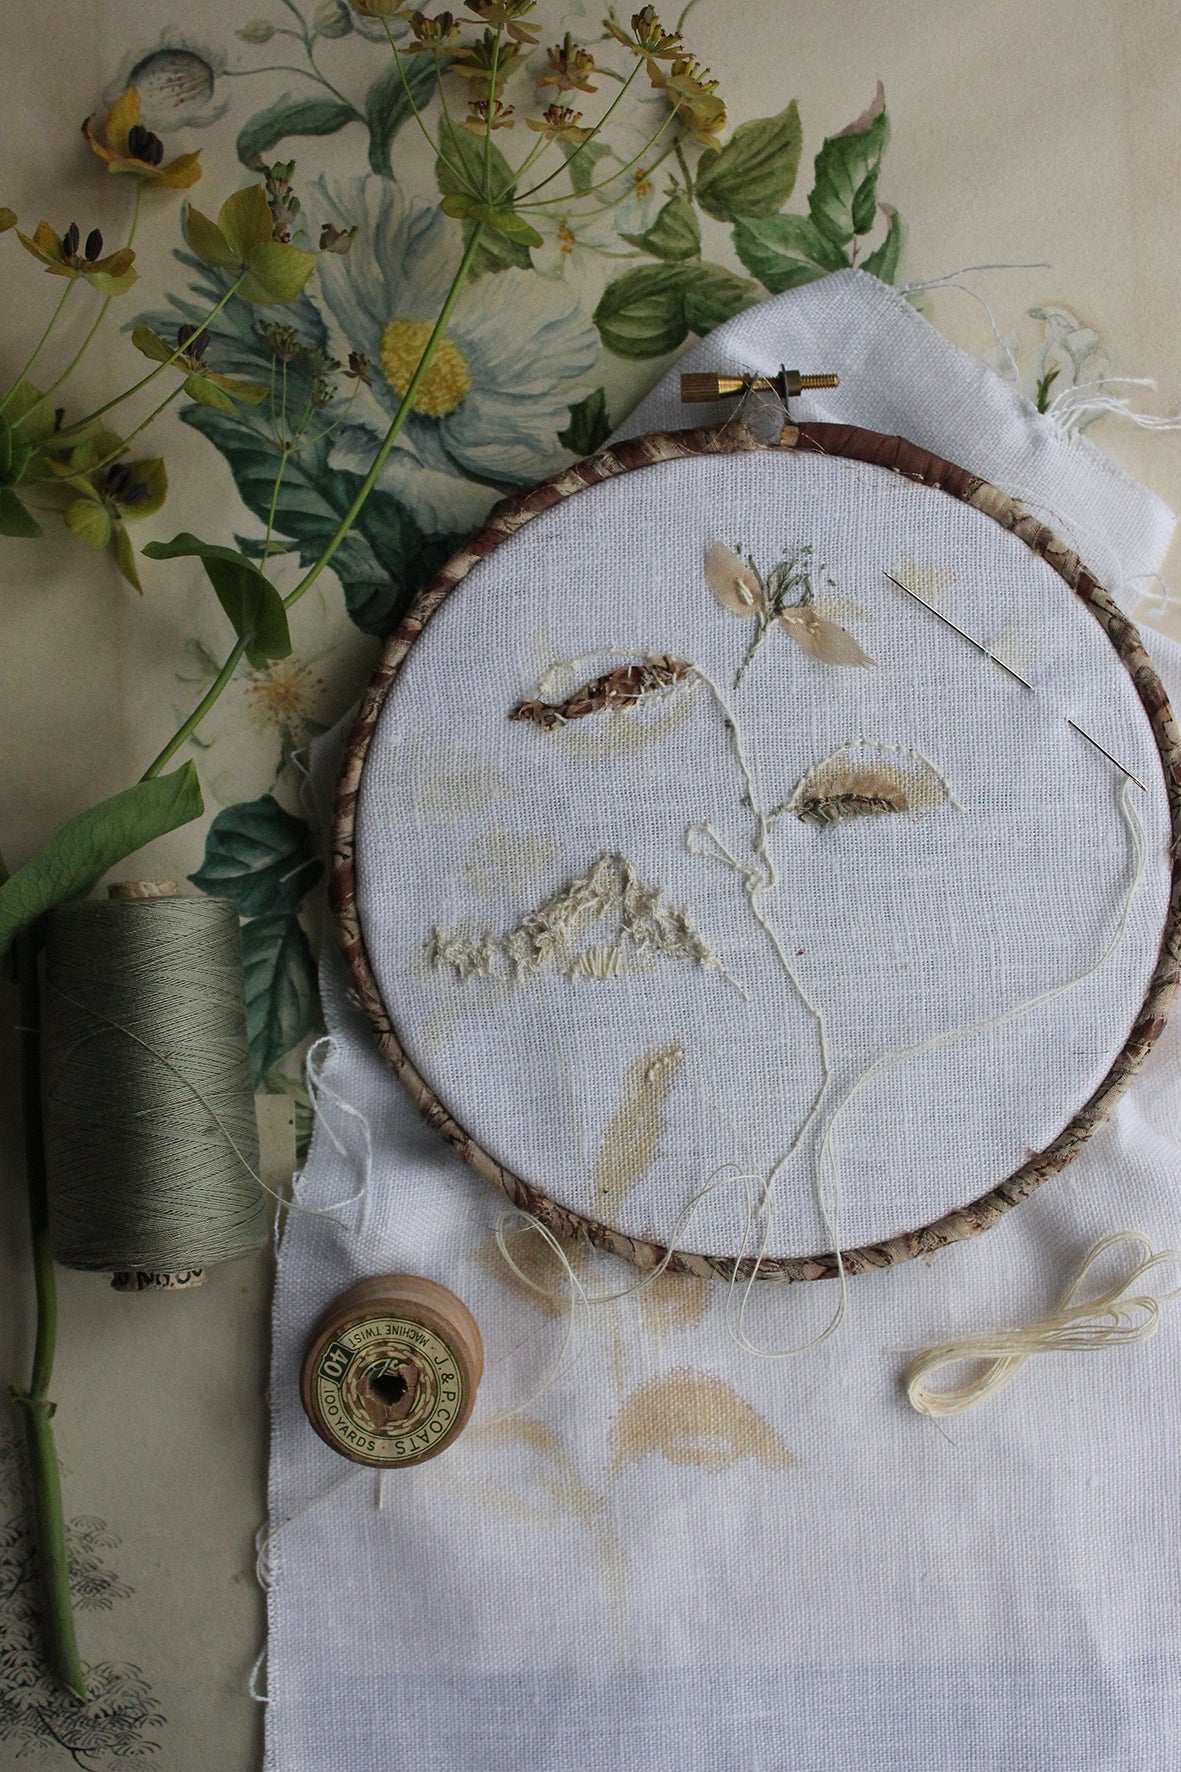 THE SUNDAY STITCHING SCHOOL - SUNDAY 15TH SEPTEMBER 2019 (AFTERNOON)